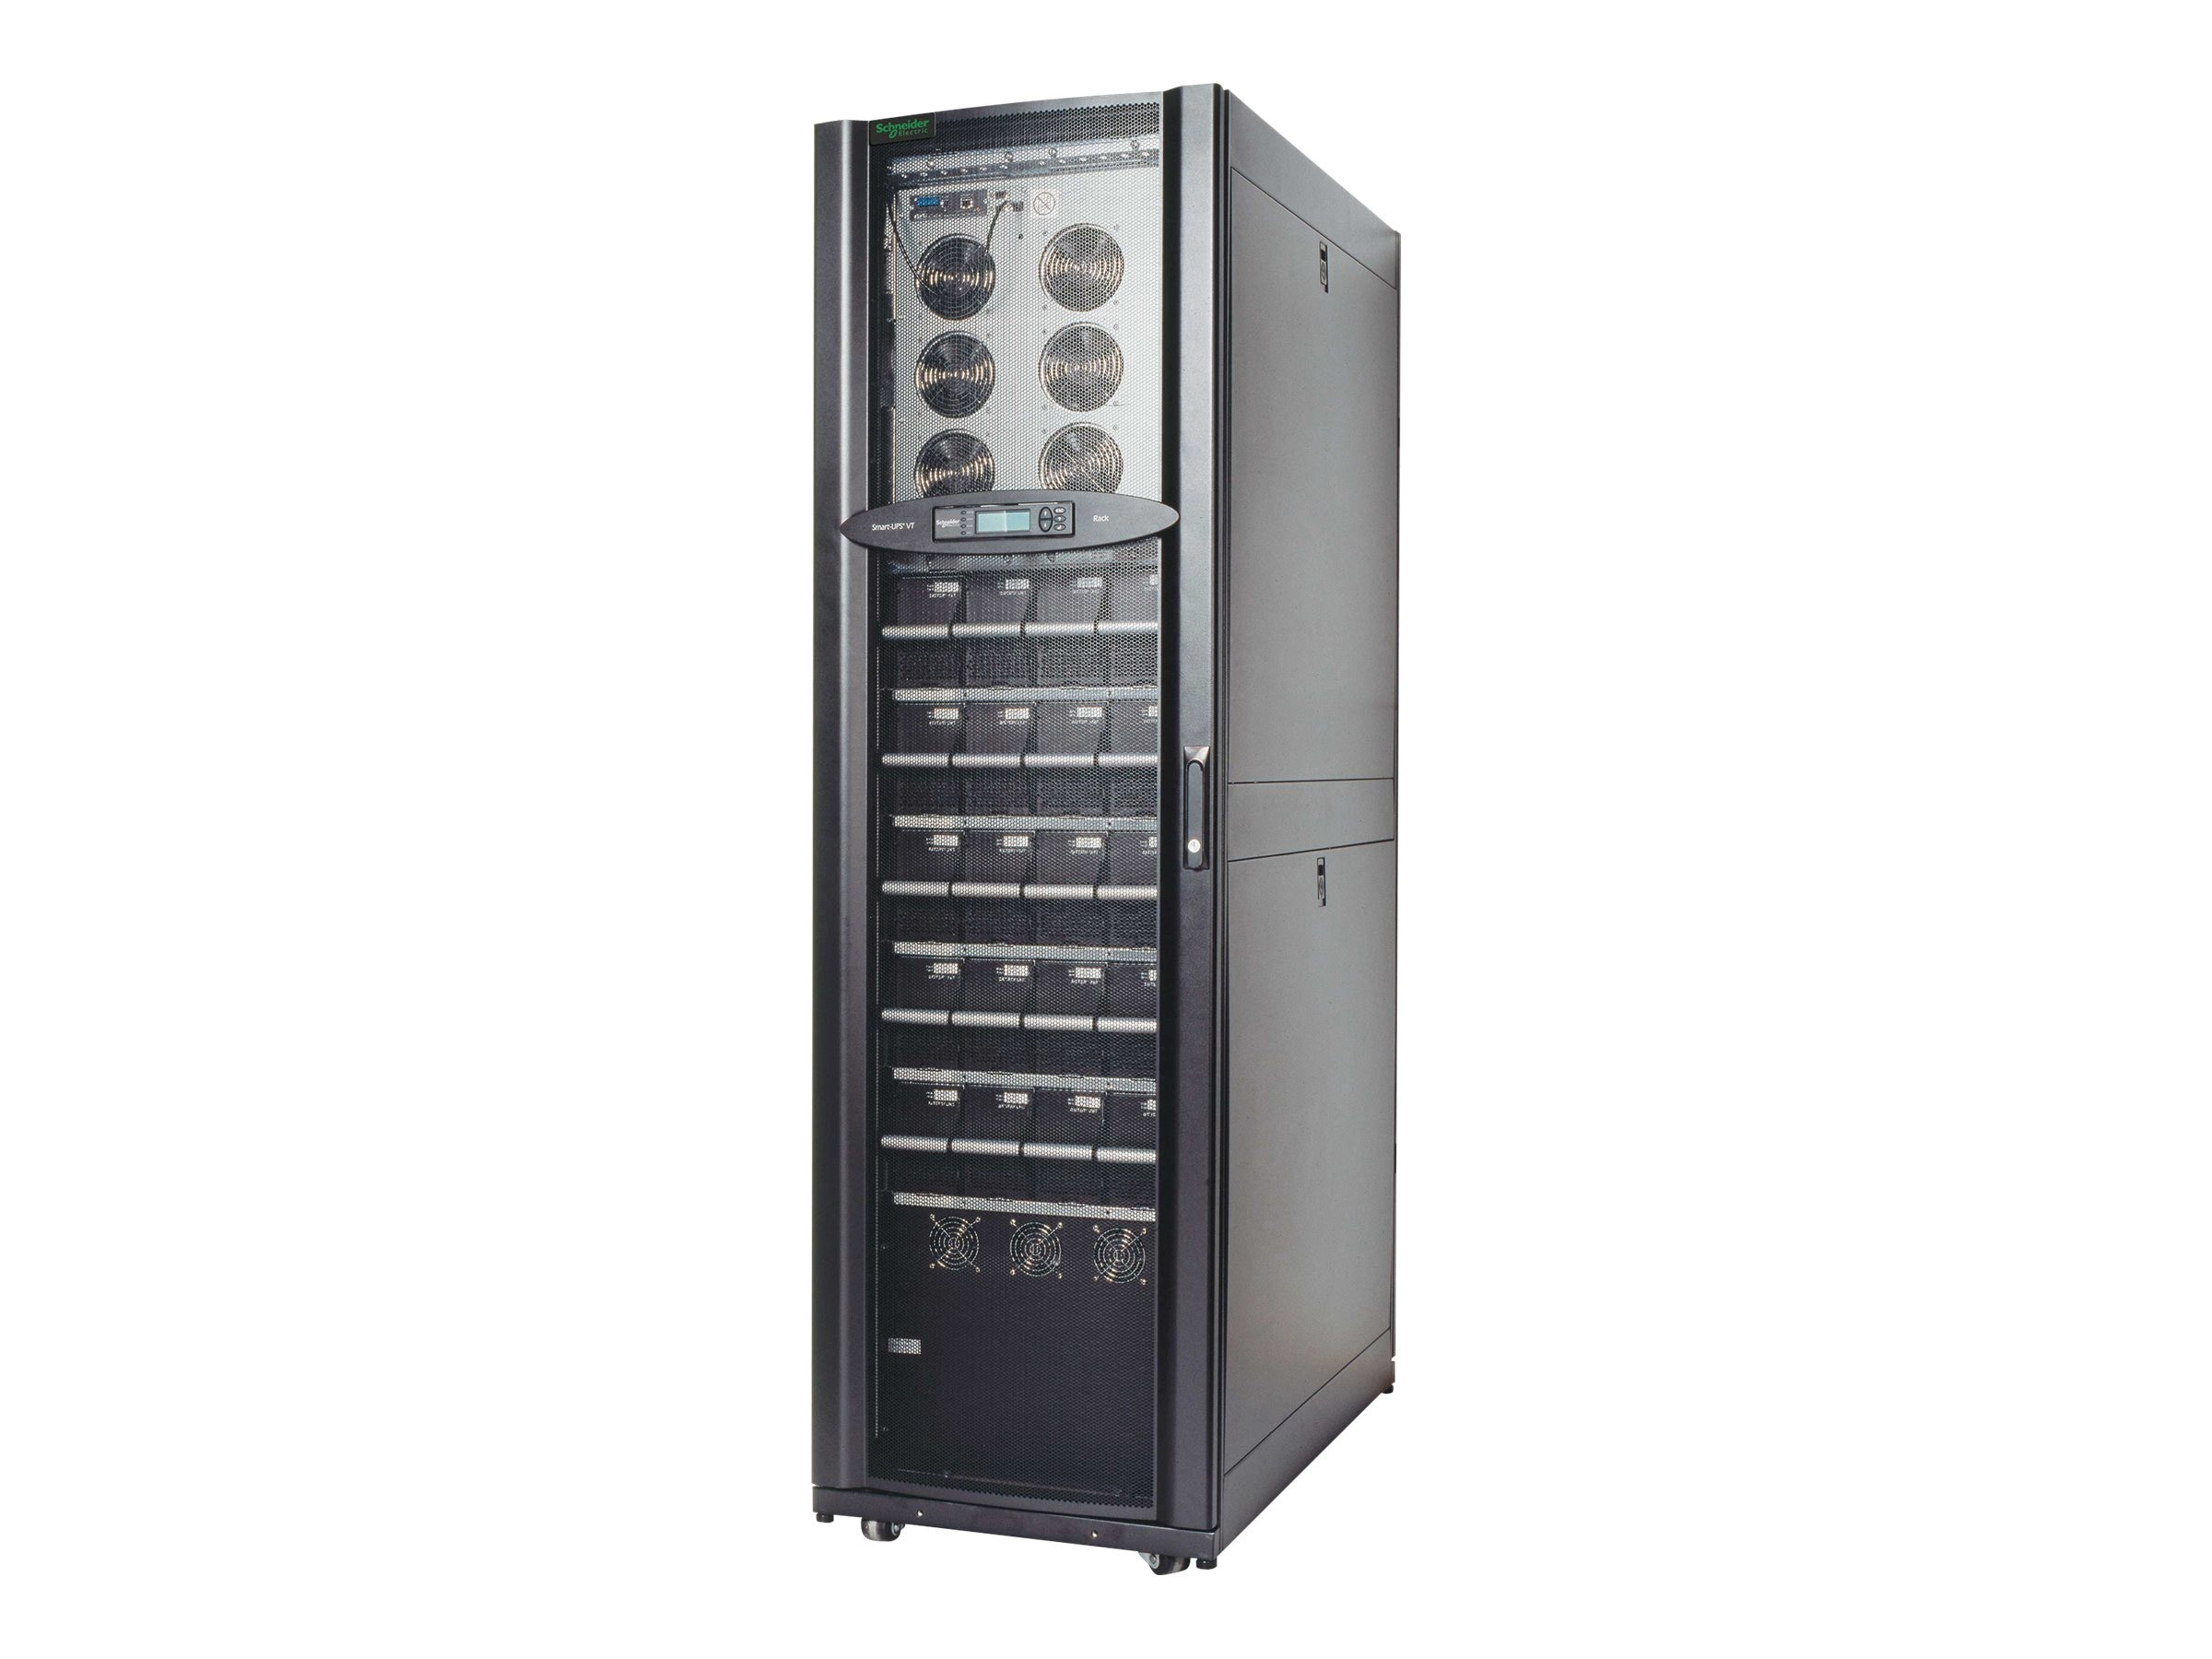 APC Smart-UPS VT 20kVA RM, 480V Input, 208V Output, (3) Battery Modules Expandable to (5), PDU, Startup, SUVTR20KG3B5S, 9694096, Battery Backup/UPS